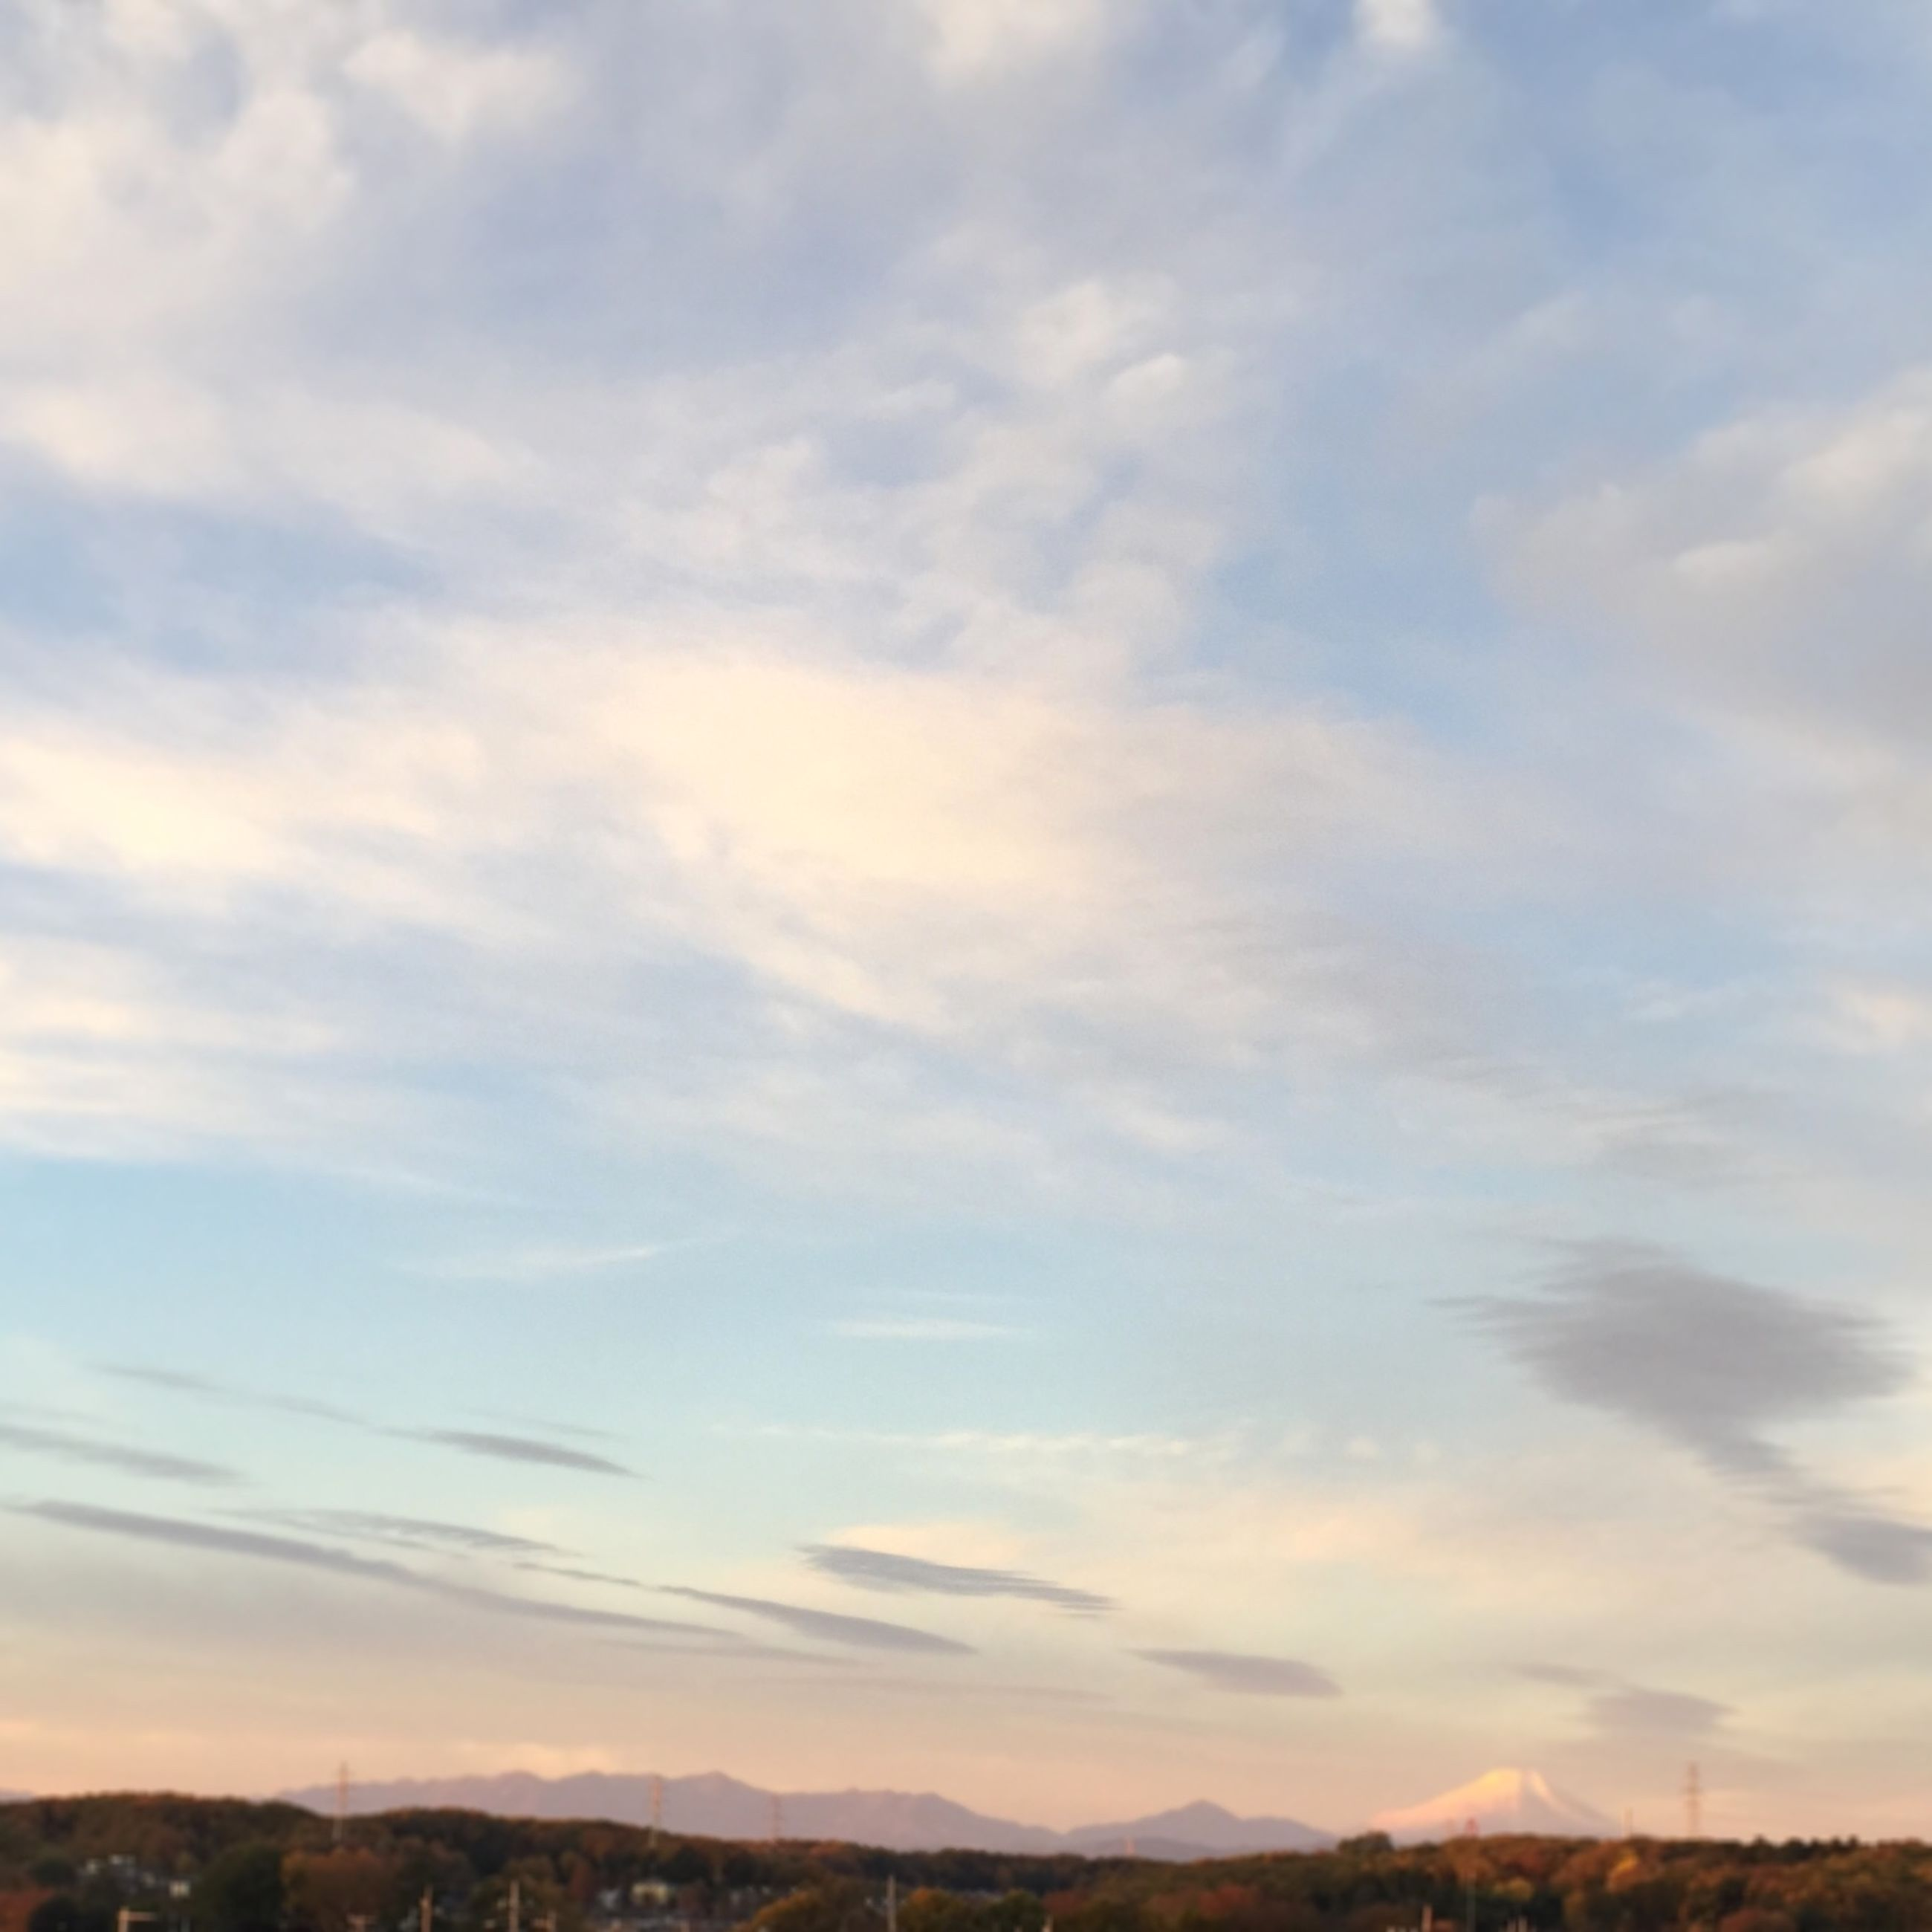 sky, landscape, tranquil scene, scenics, cloud - sky, tranquility, beauty in nature, mountain, nature, cloud, cloudy, sunset, idyllic, horizon over land, outdoors, mountain range, no people, non-urban scene, field, remote